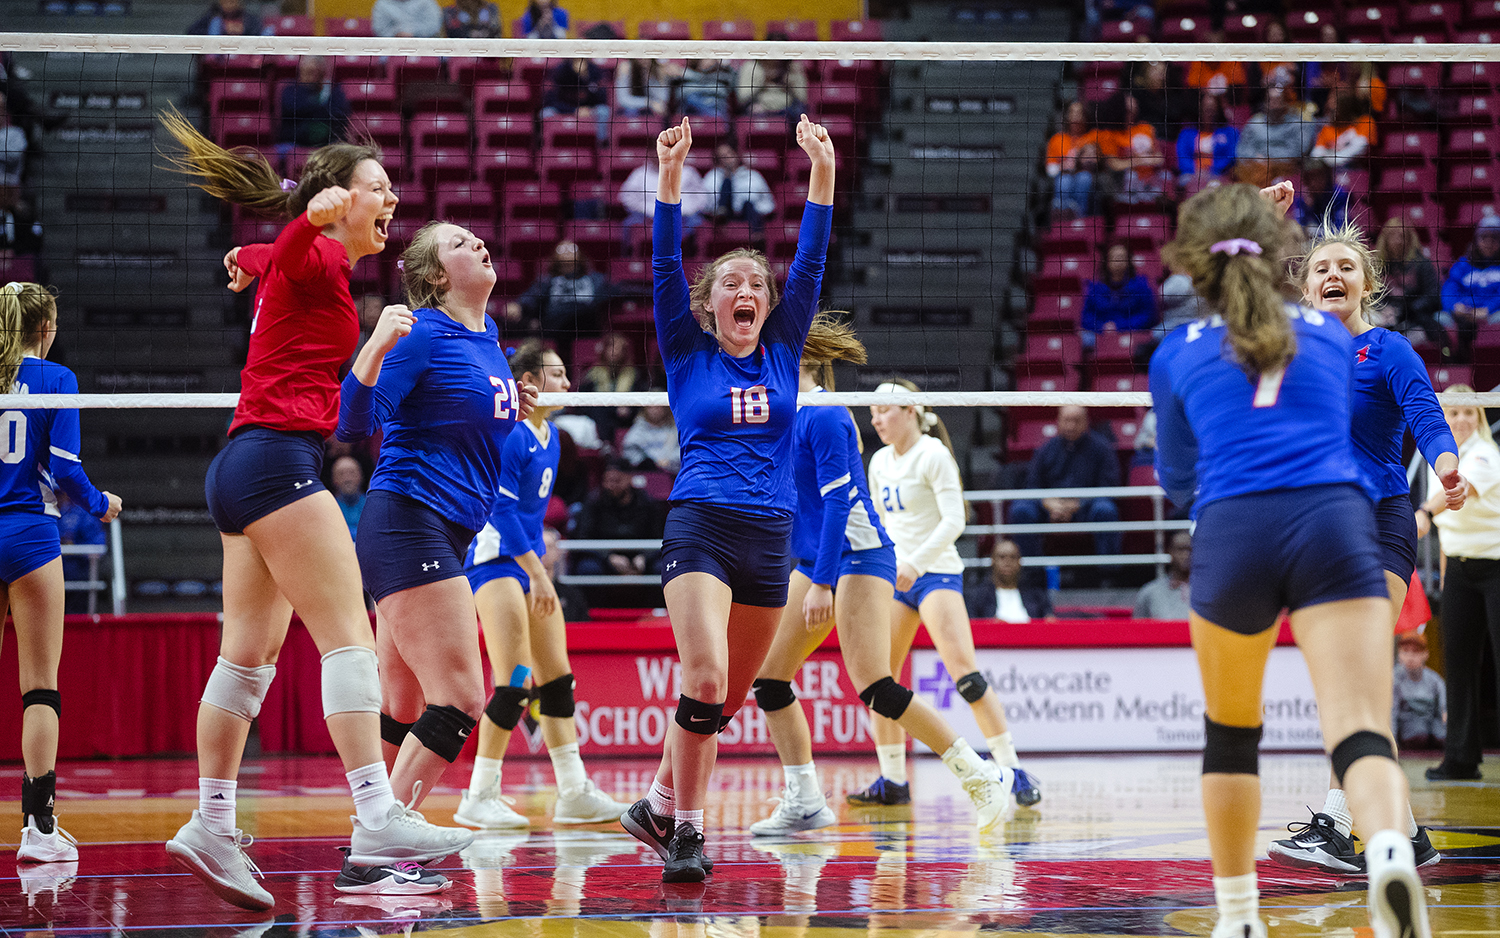 Pleasant Plains' Anna Kanllakan and the Cardinals celebrate a point as they close in on a win against Galena during the IHSA Class 2A Volleyball championship at Redbird Arena in Normal Saturday, Nov. 10, 2018. [Ted Schurter/The State Journal-Register]